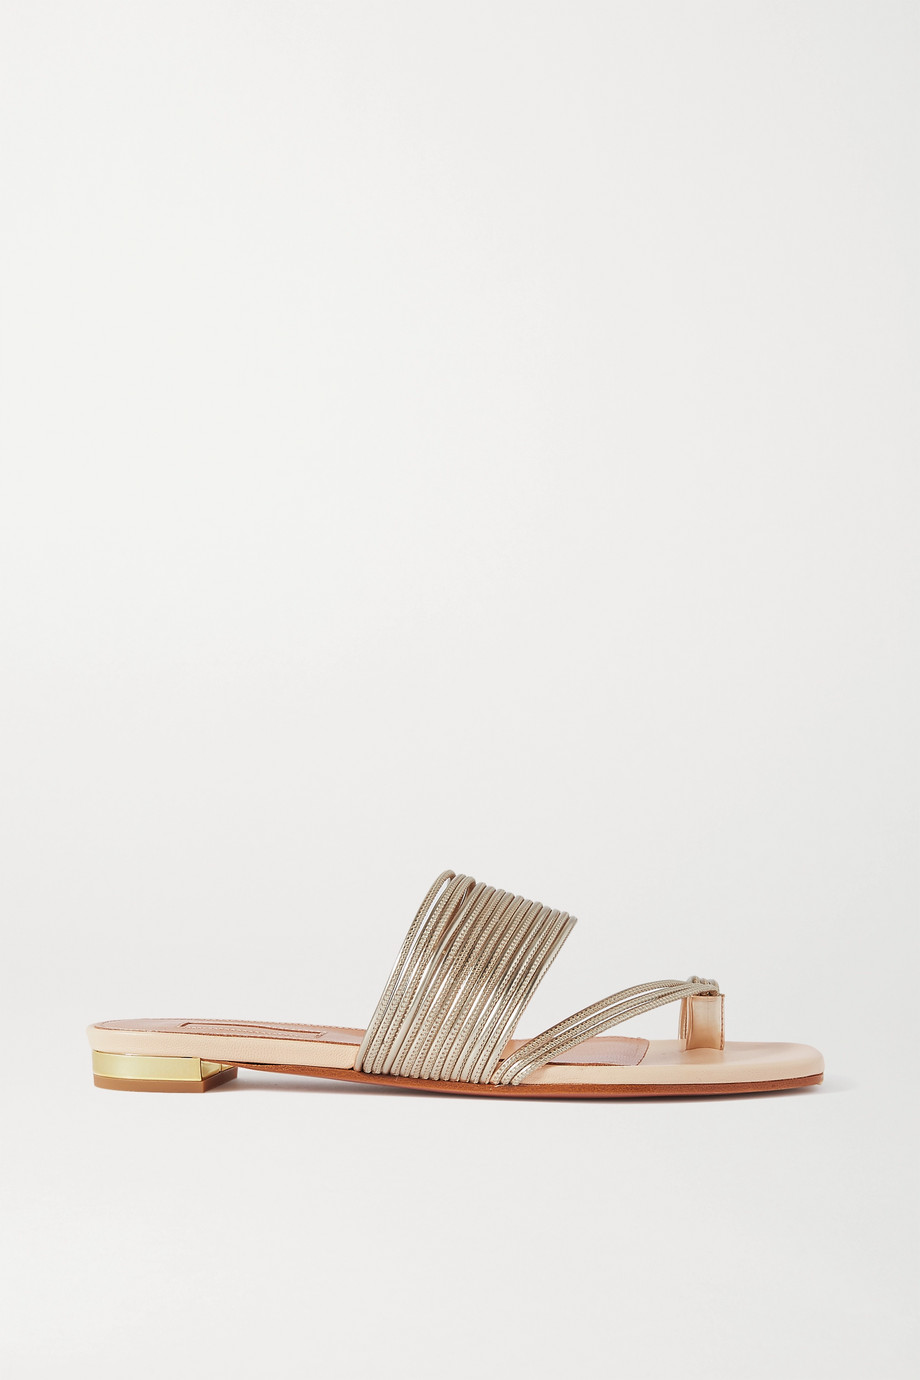 Aquazzura Sunny metallic faux leather sandals